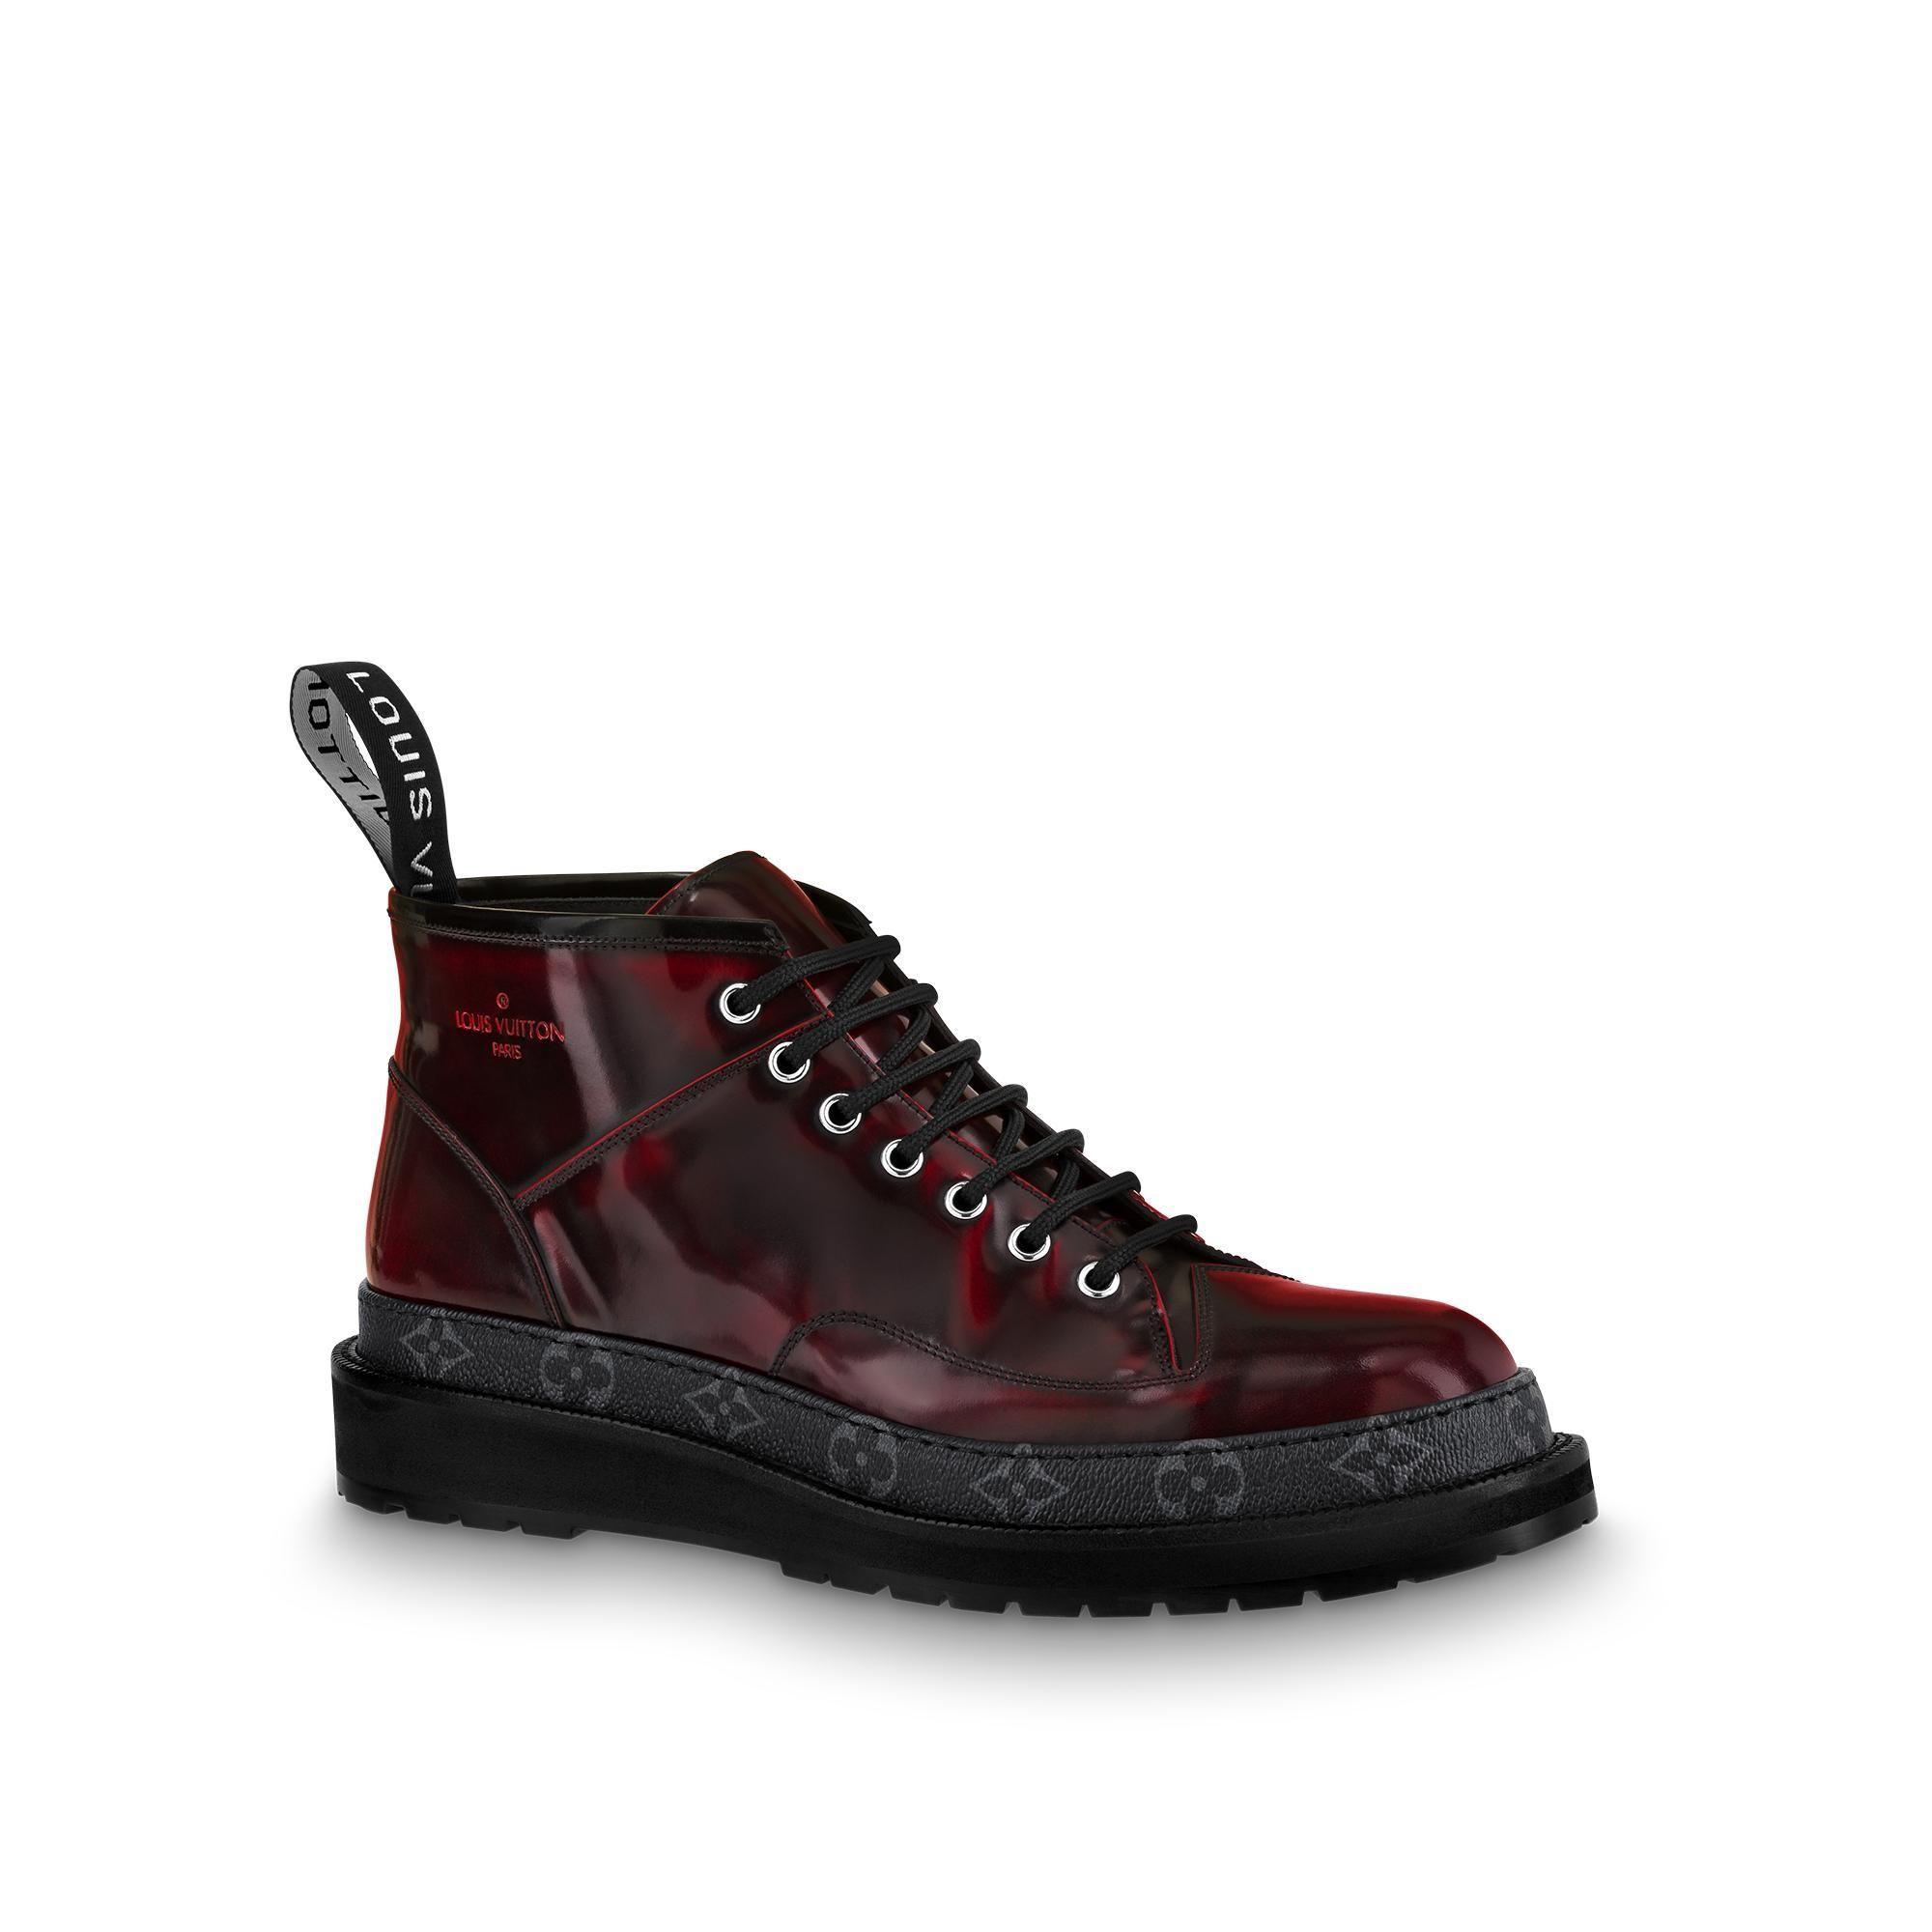 LOUIS VUITTON Black Ice Ankle Boot